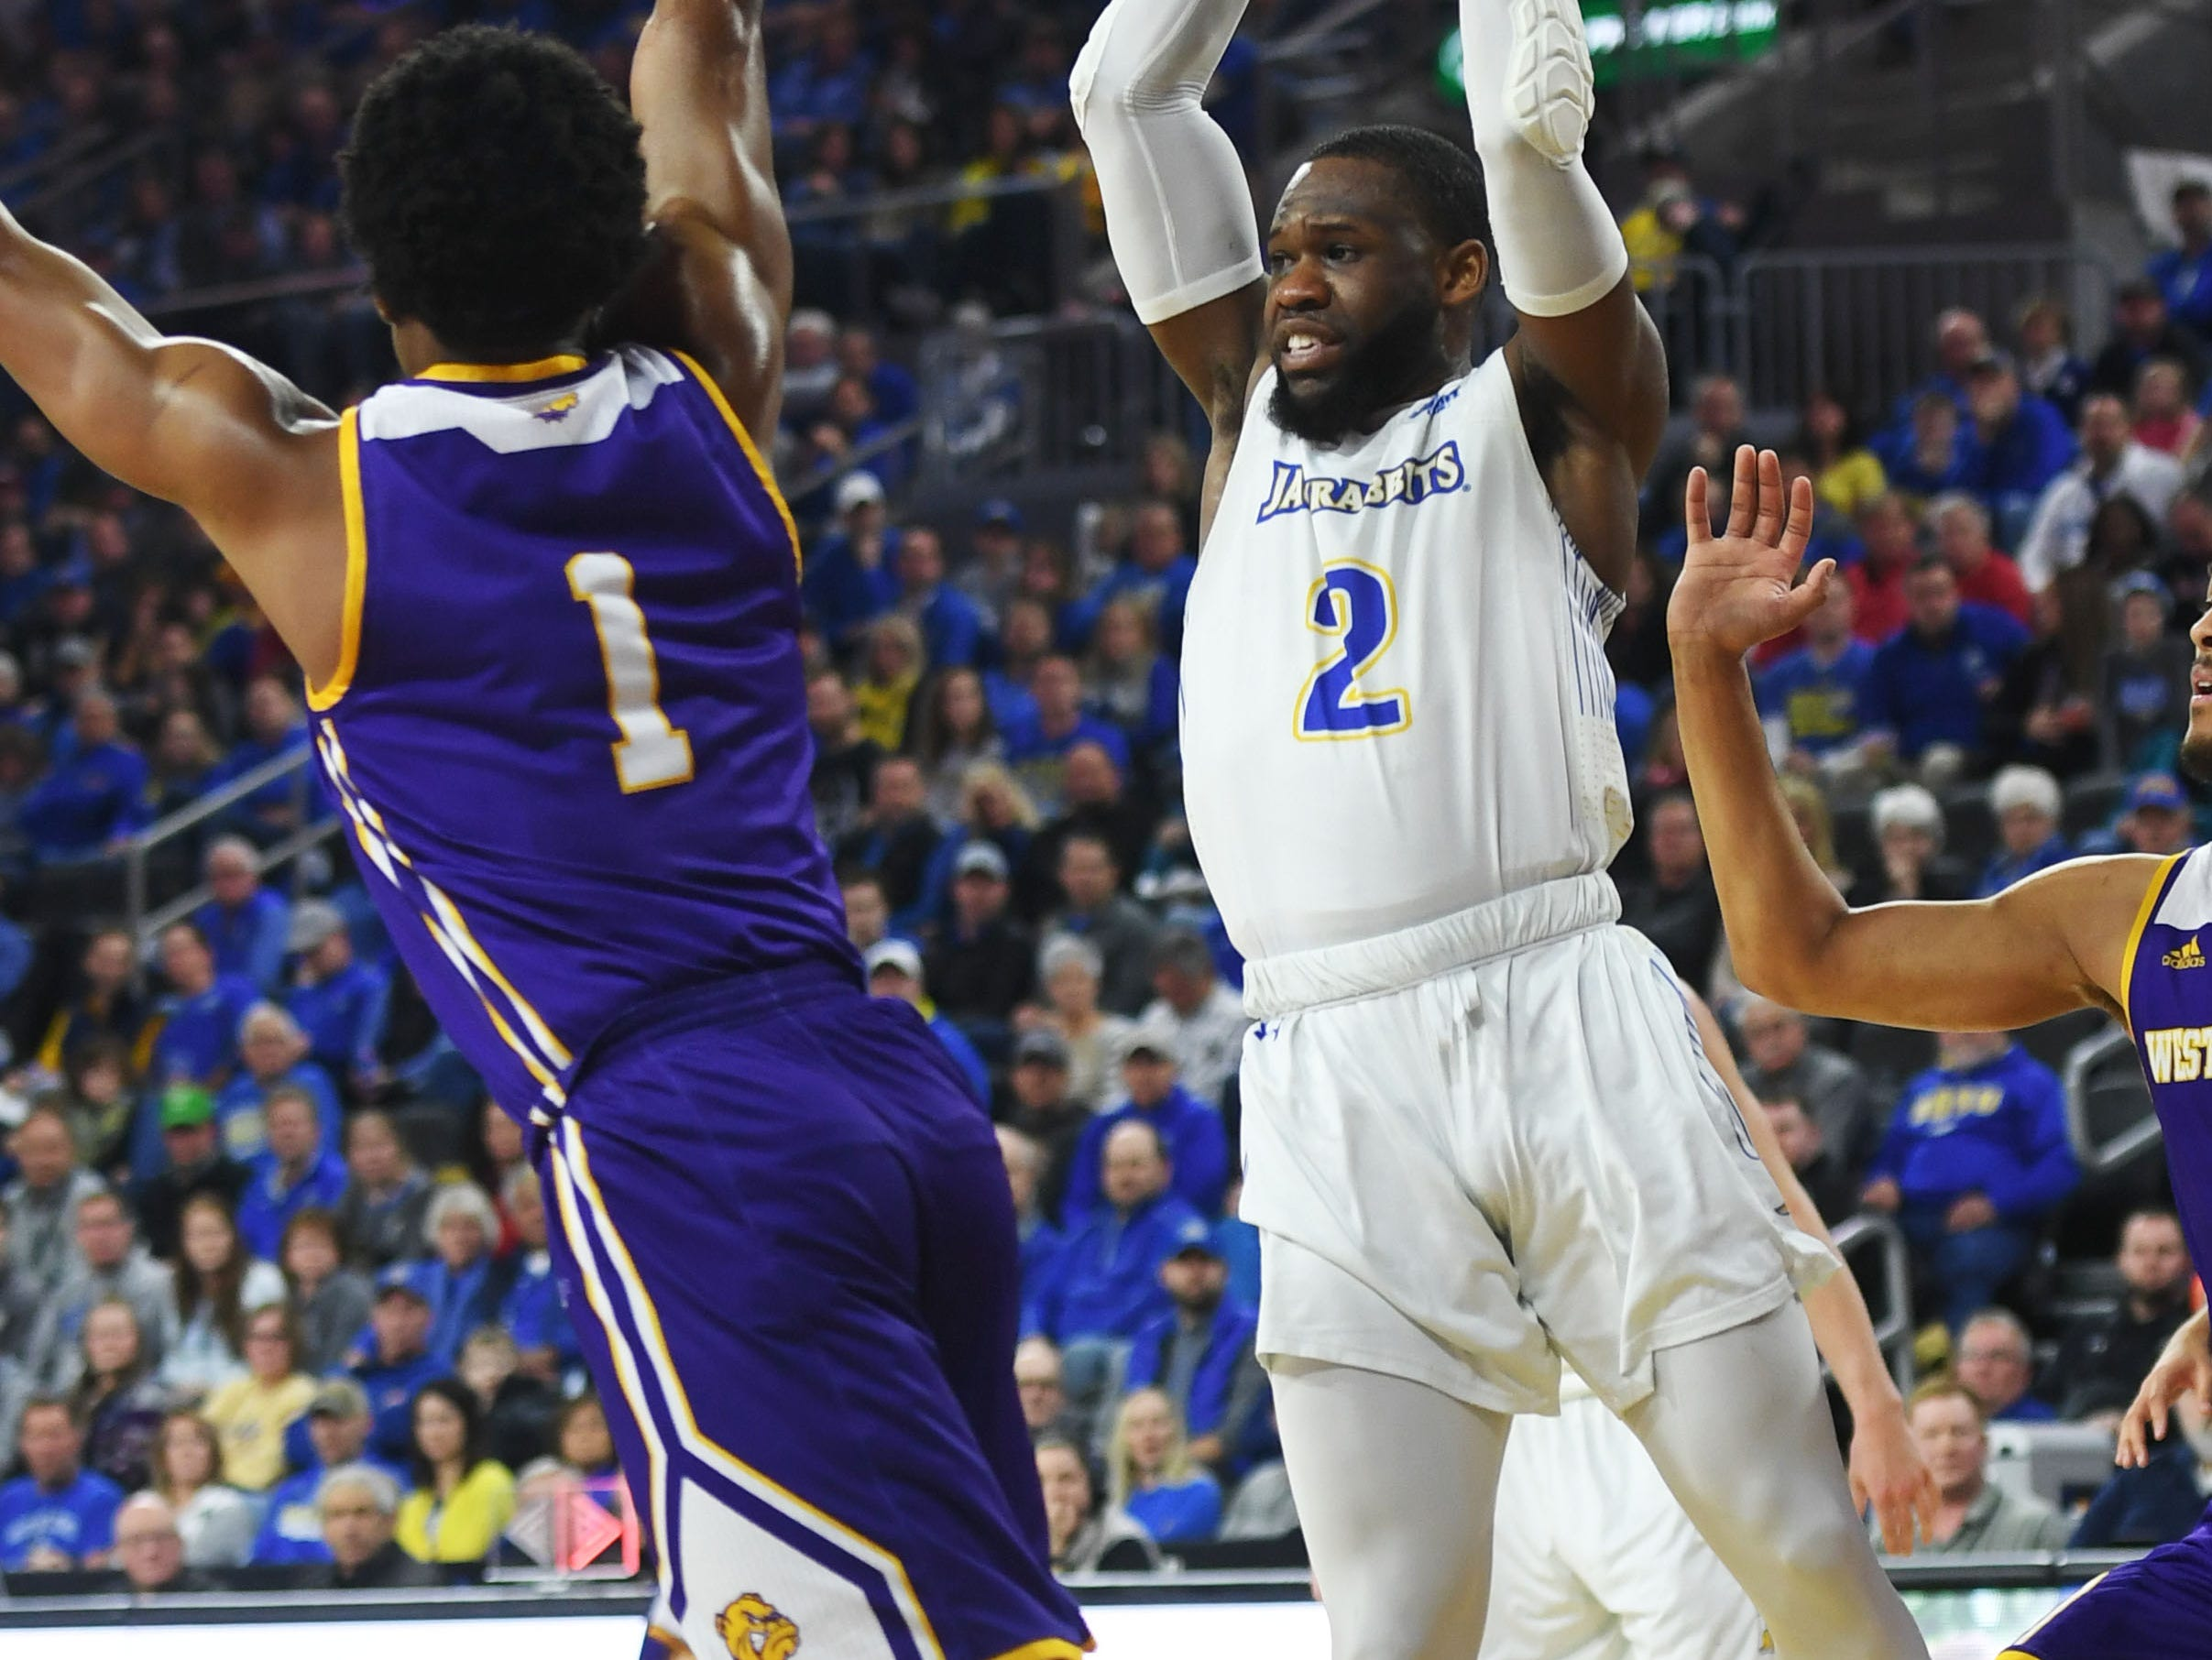 SDSU's Tevin King goes against Western Illinois defense during the game Saturday, March 9, in the Summit League tournament at the Denny Sanford Premier Center in Sioux Falls.